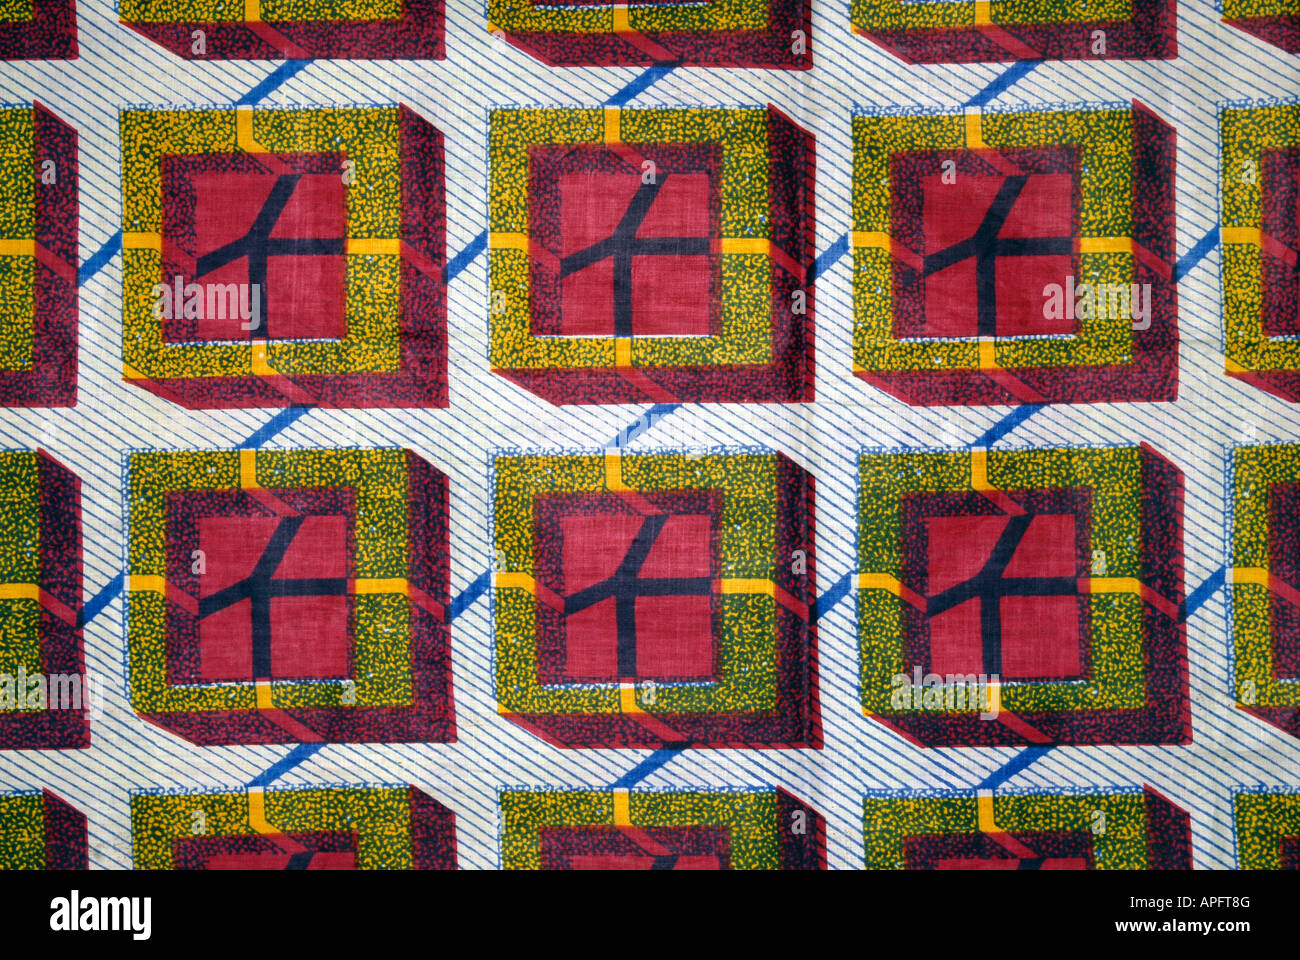 Detail of a batik style stamped fabric from Nigeria West Africa - Stock Image